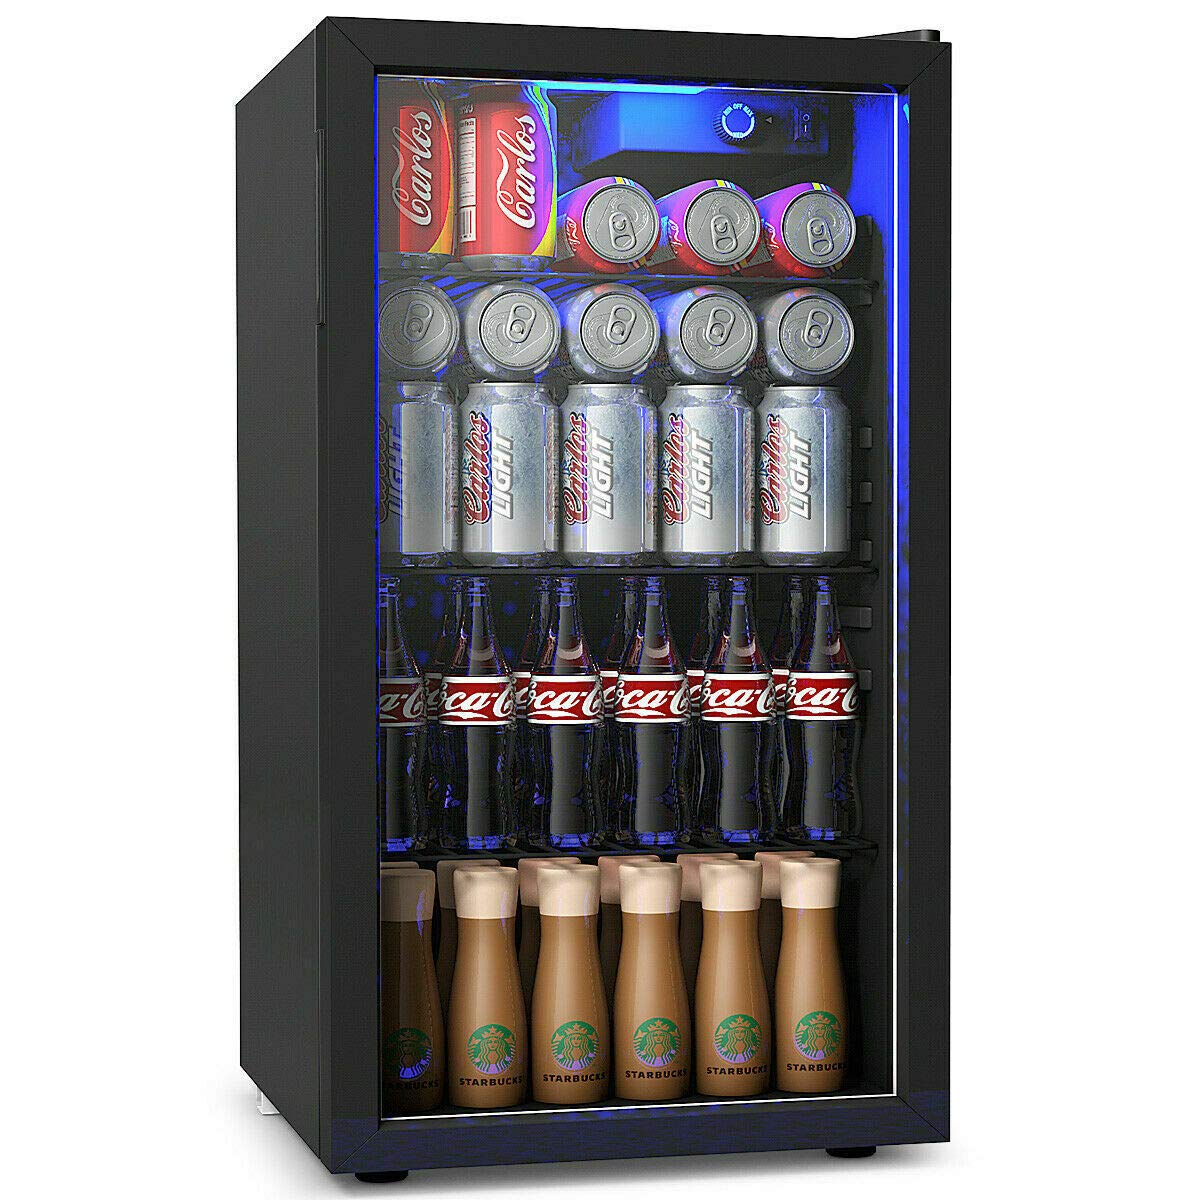 COSTWAY Beverage Refrigerator and Cooler, 120 Can Mini Fridge, Adjustable Removable Shelves, Perfect for Soda Beer or Wine Small Drink Dispenser Machine for Office or Bar (17.5'' x 19'' x 31'') by COSTWAY